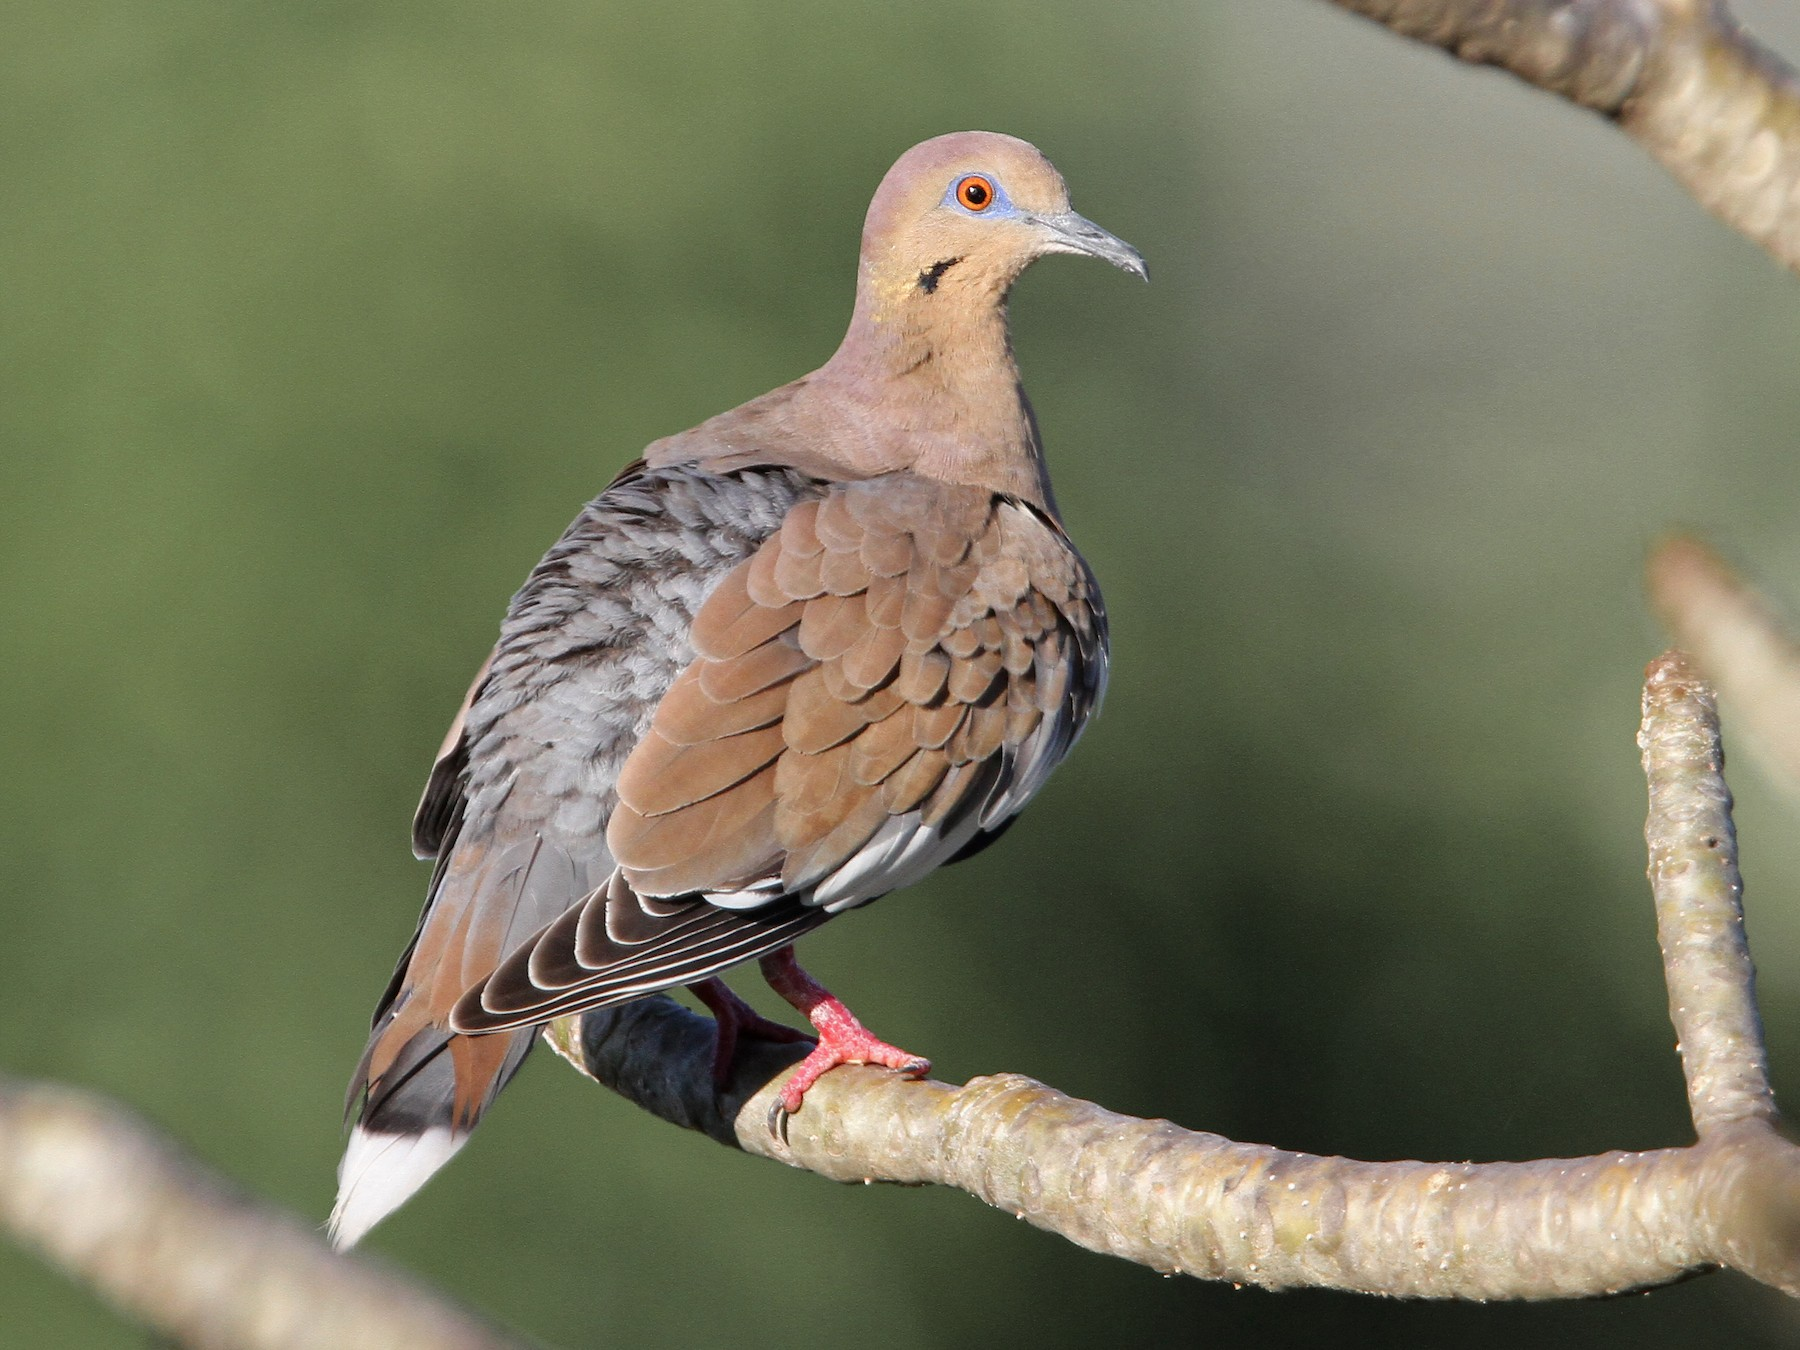 White-winged Dove - Christoph Moning